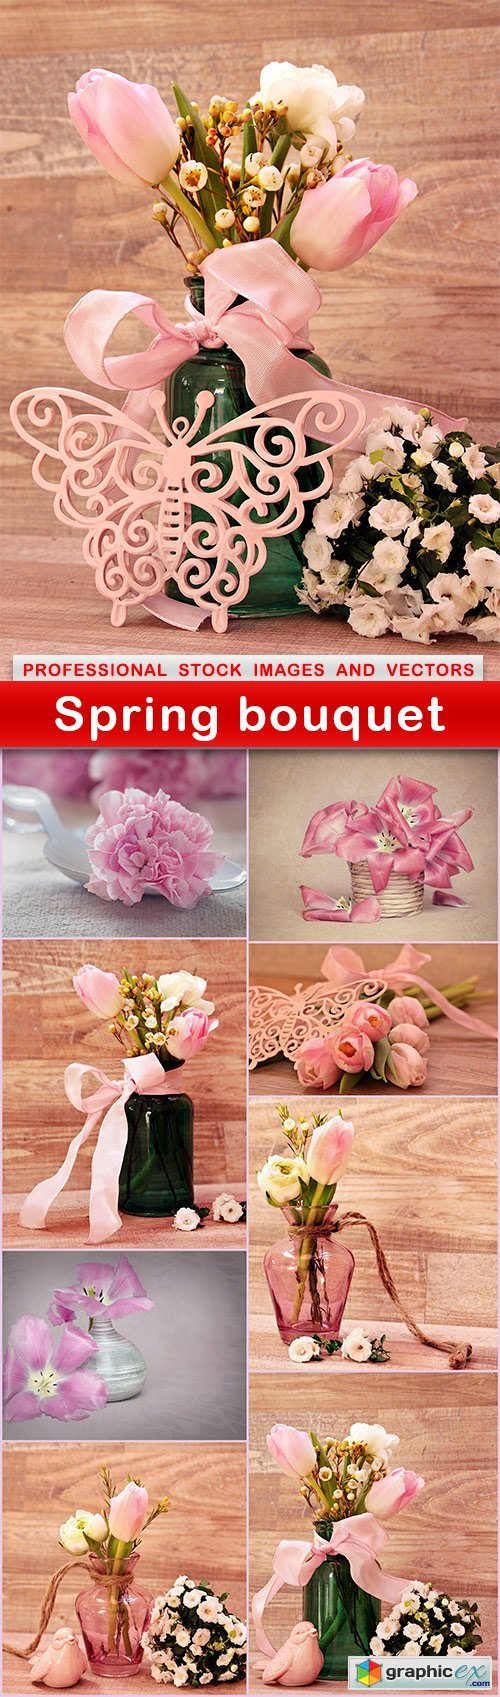 Spring bouquet - 9 UHQ JPEG